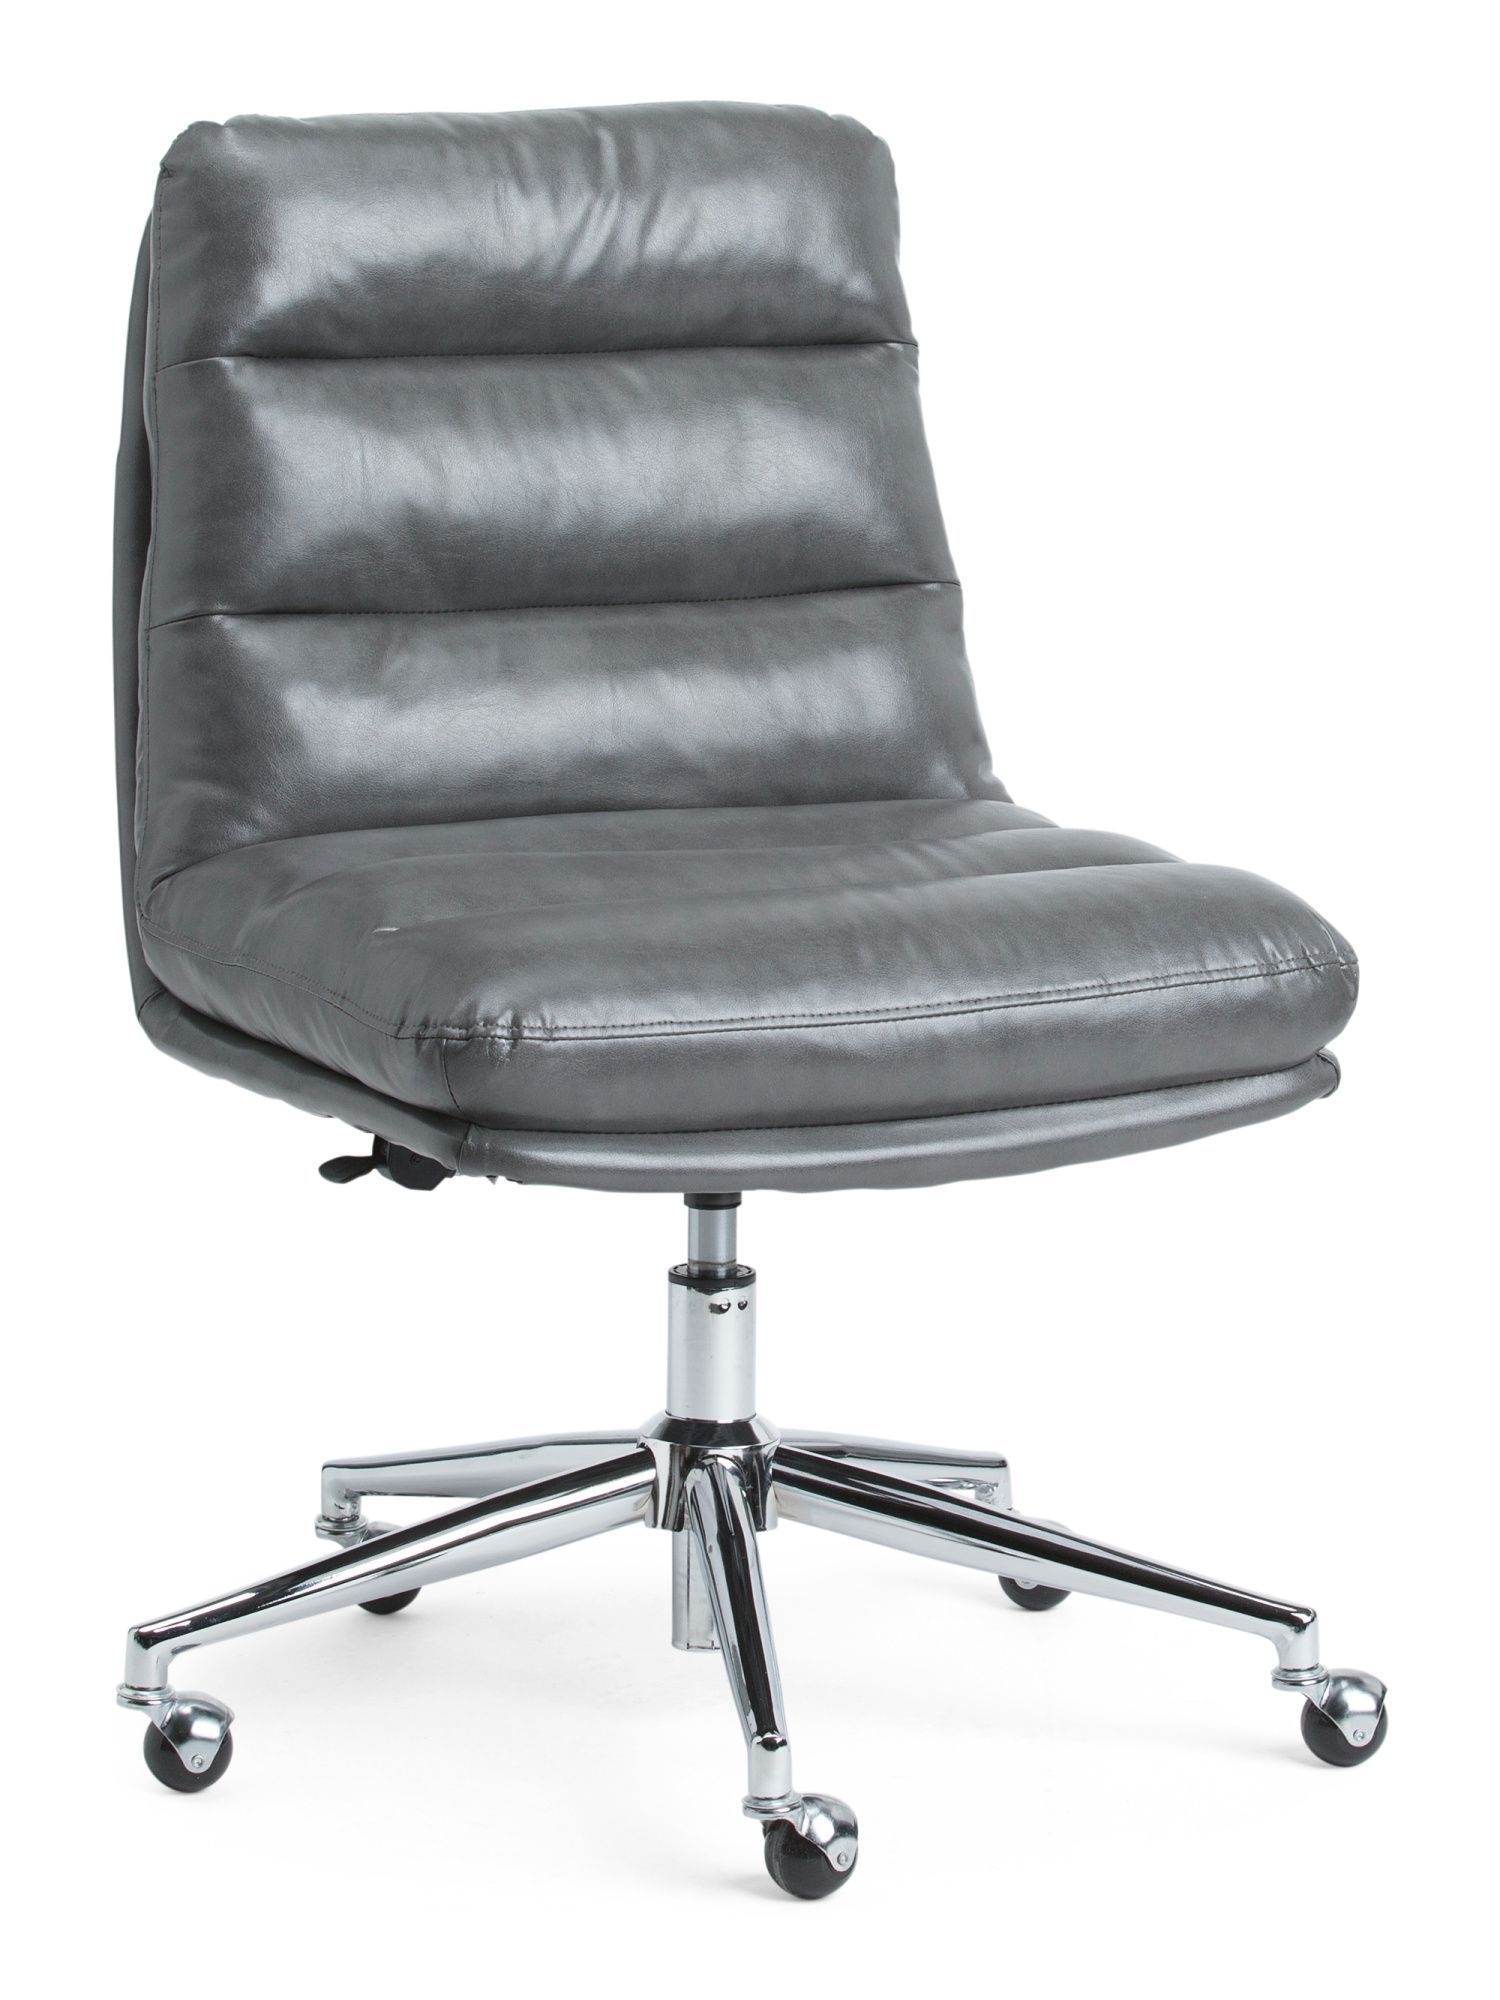 Legacy Office Chair Chair, Restoration hardware chair